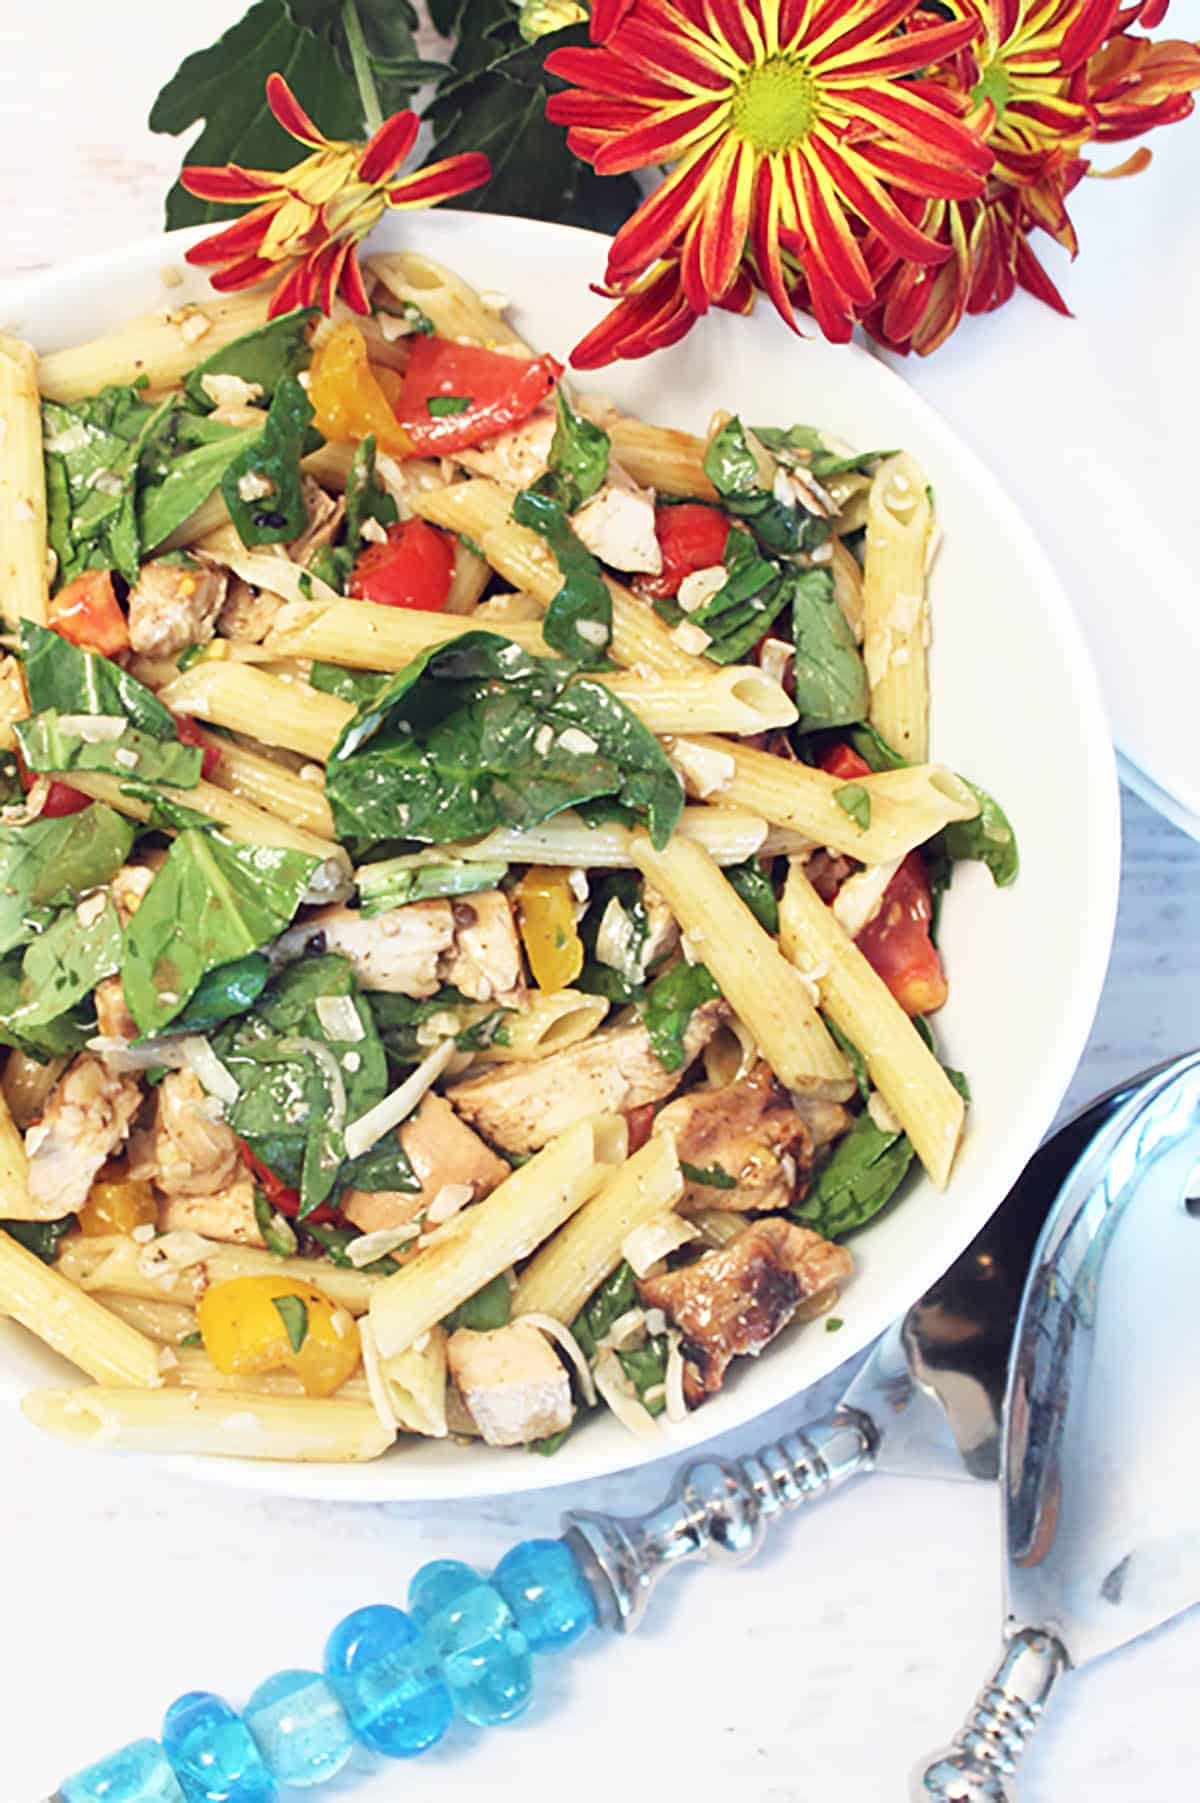 Chicken Pasta Salad in bowl with red flowers and blue handled servers.